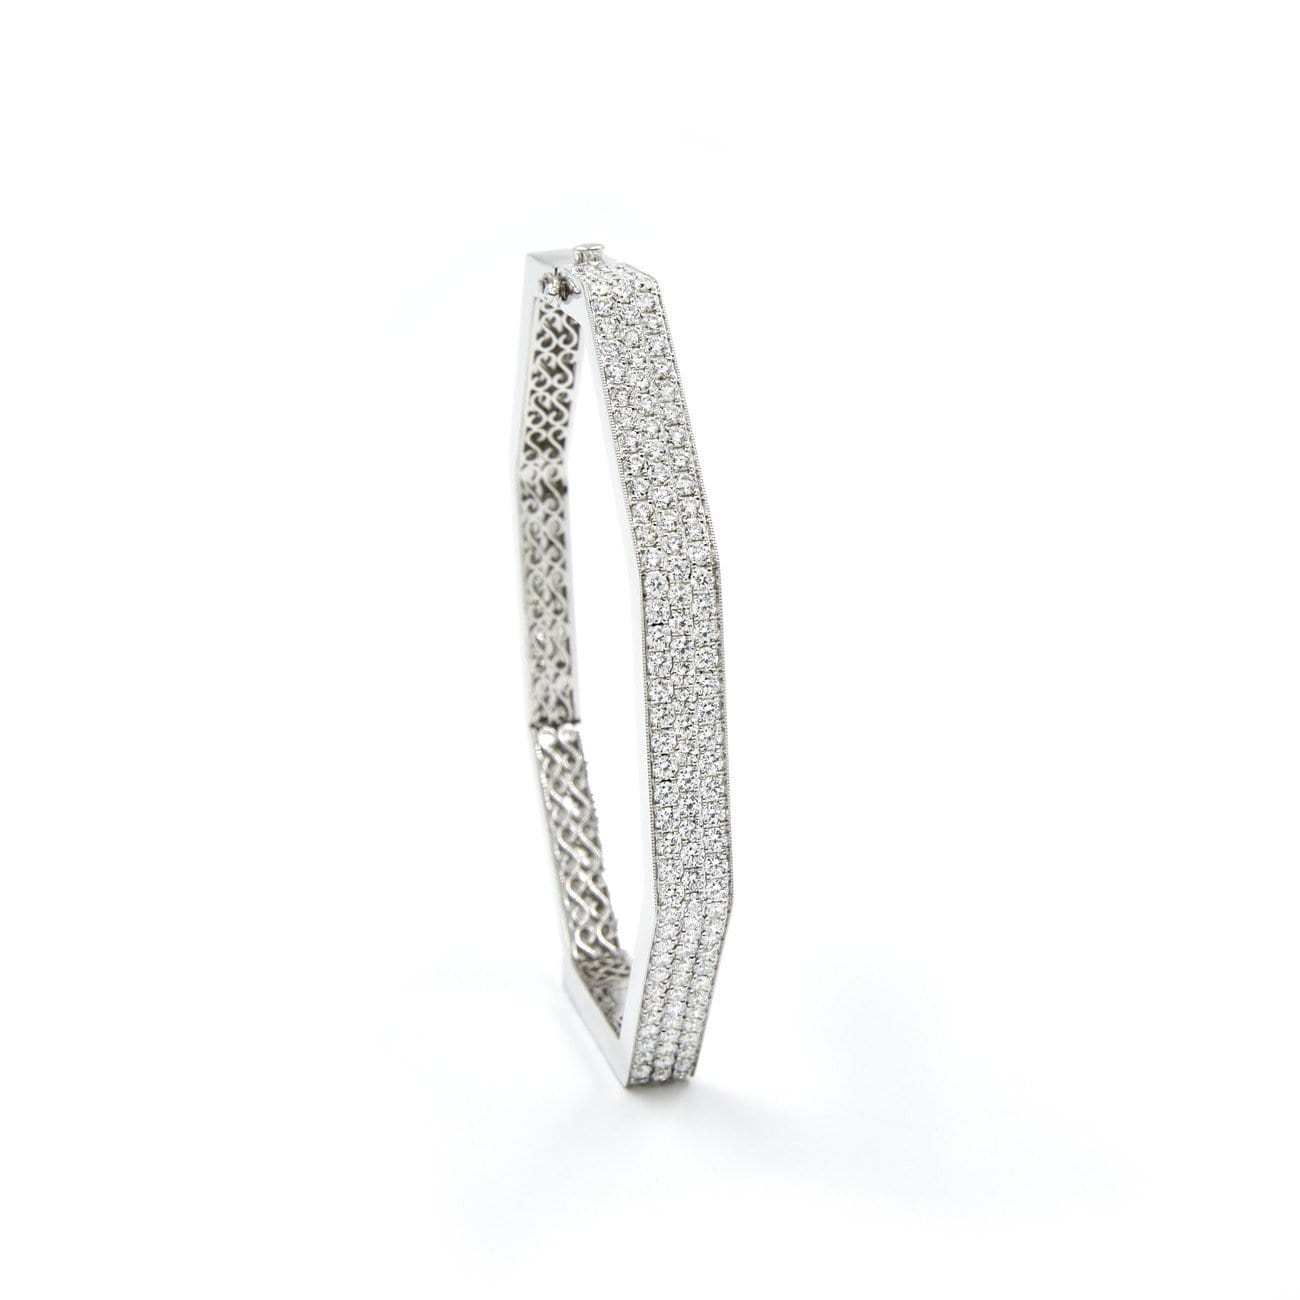 FENG SHUI WIDE WHITE GOLD DIAMOND BANGLE - Chris Aire Fine Jewelry & Timepieces